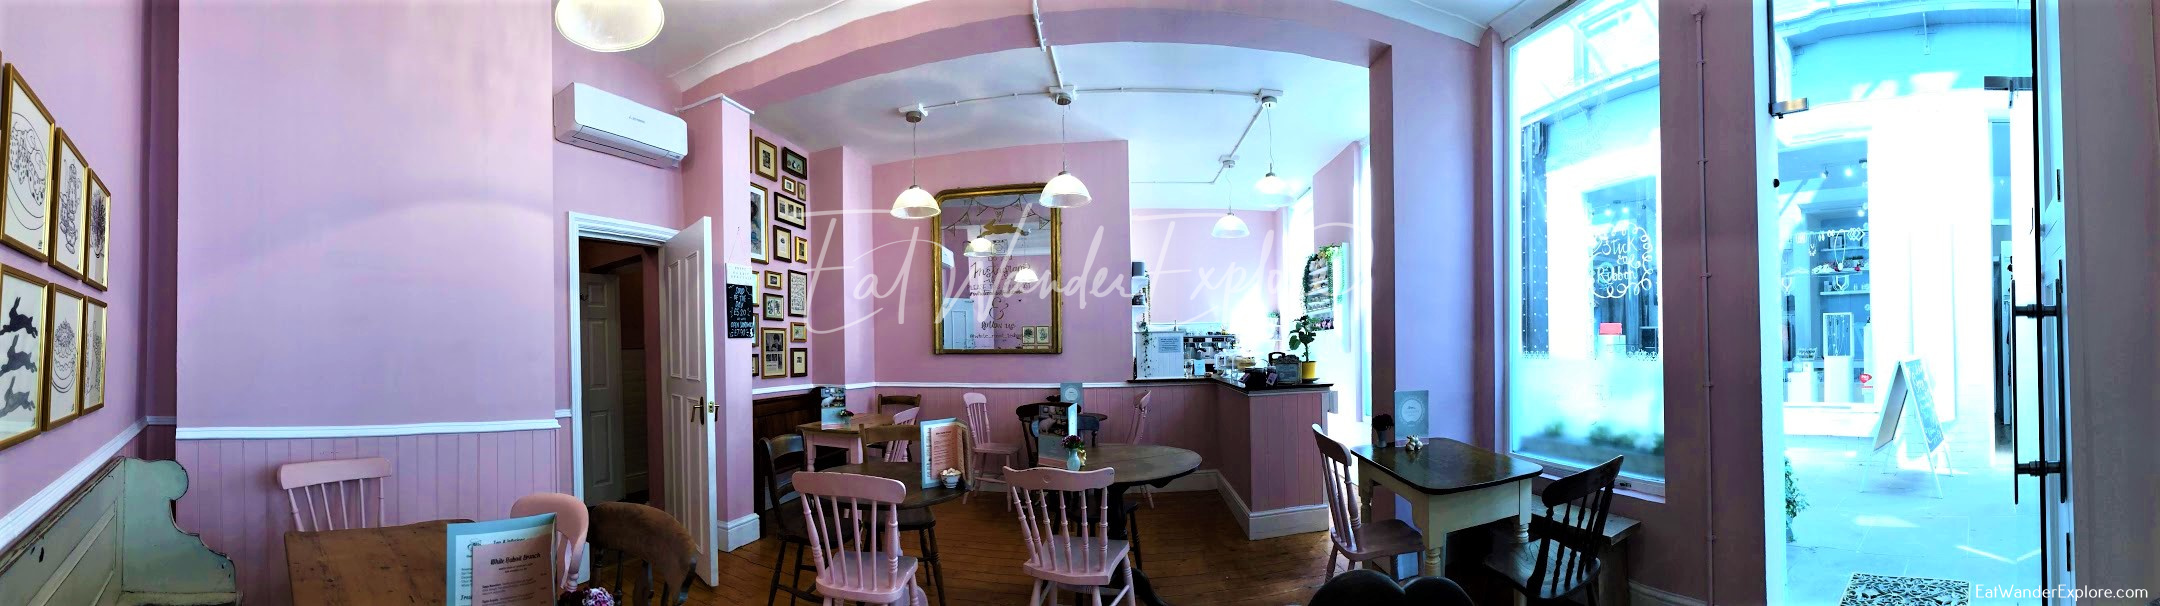 Panorama of White Rabbit Teahouse in Nottingham